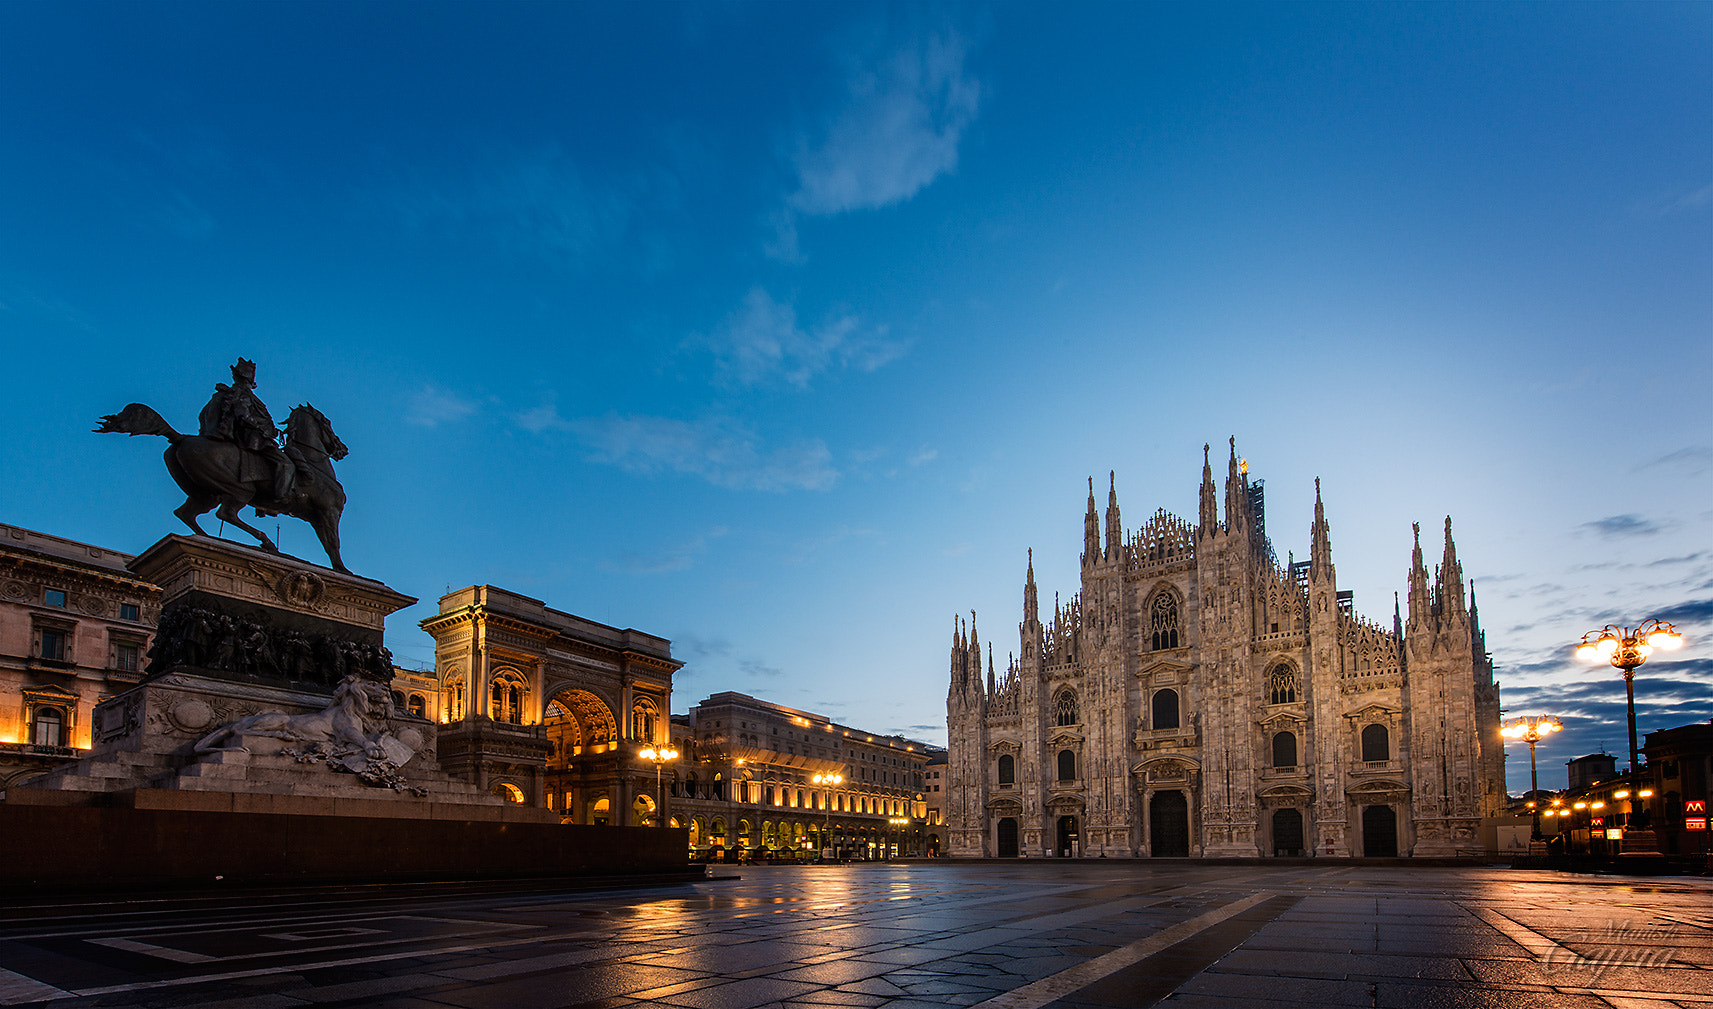 Photograph Milan Duomo by Manish Gajria on 500px